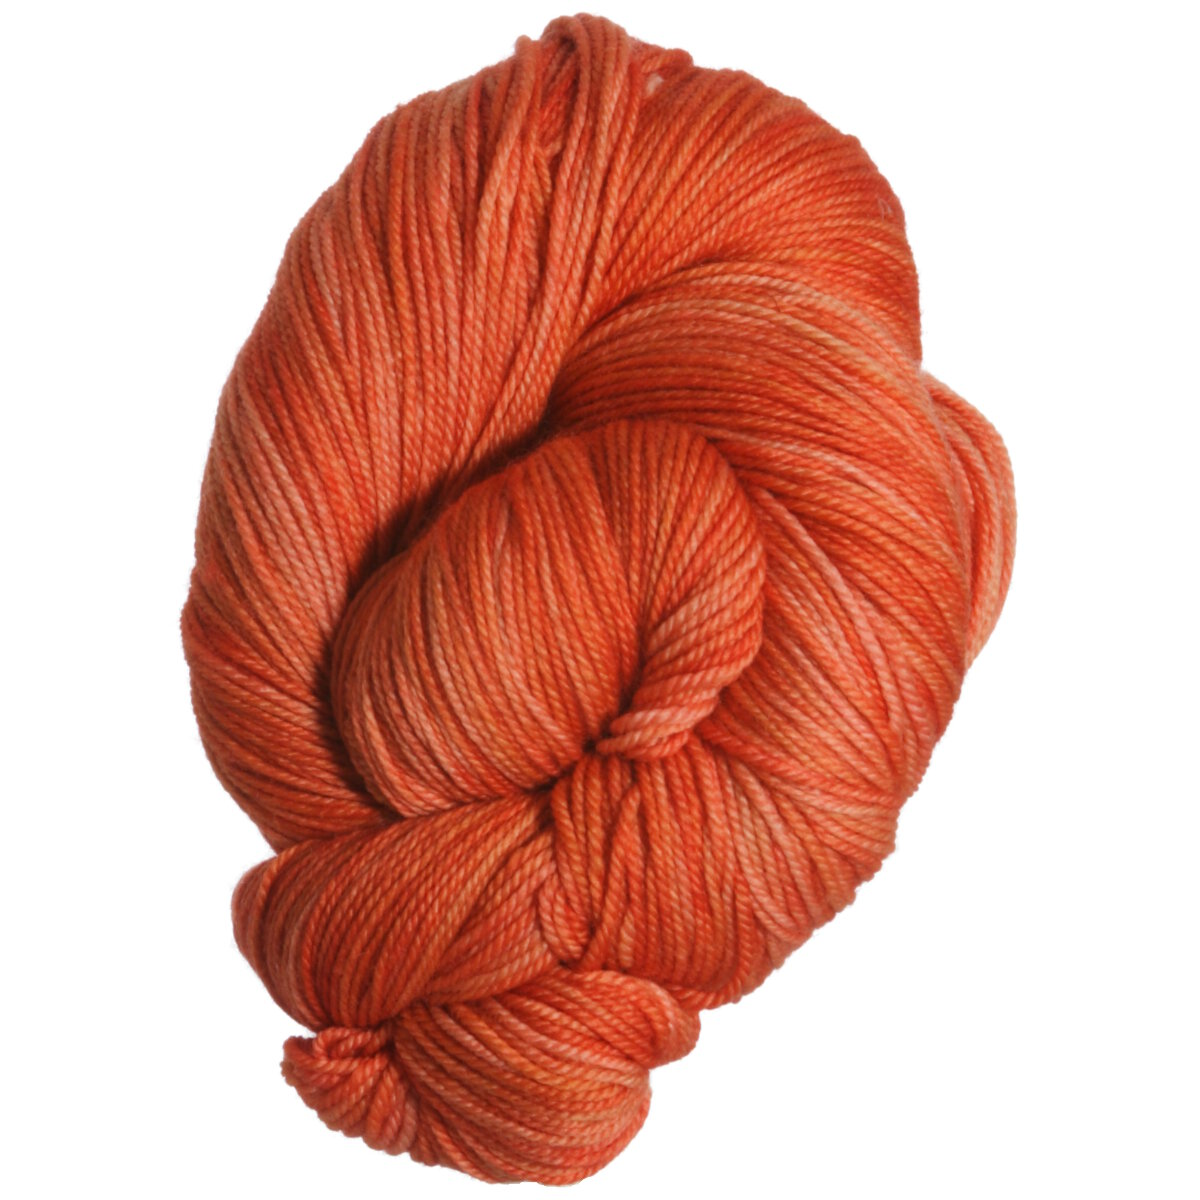 Anzula Squishy Yarn - Persimmon Detailed Description at Jimmy Beans Wool